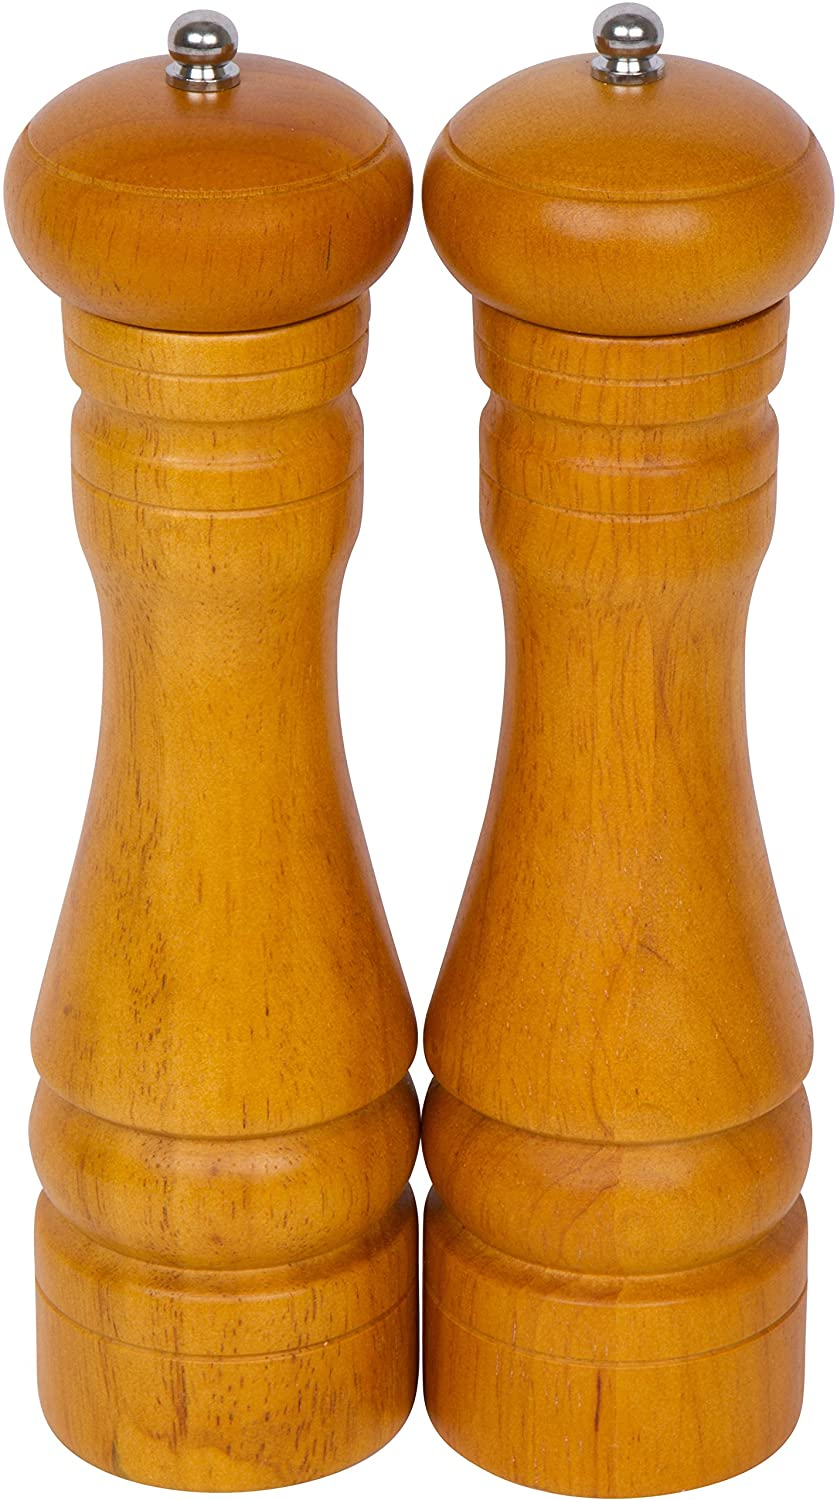 Set of 2 Wood Pepper Mill and Grinder by Trademark Innovations